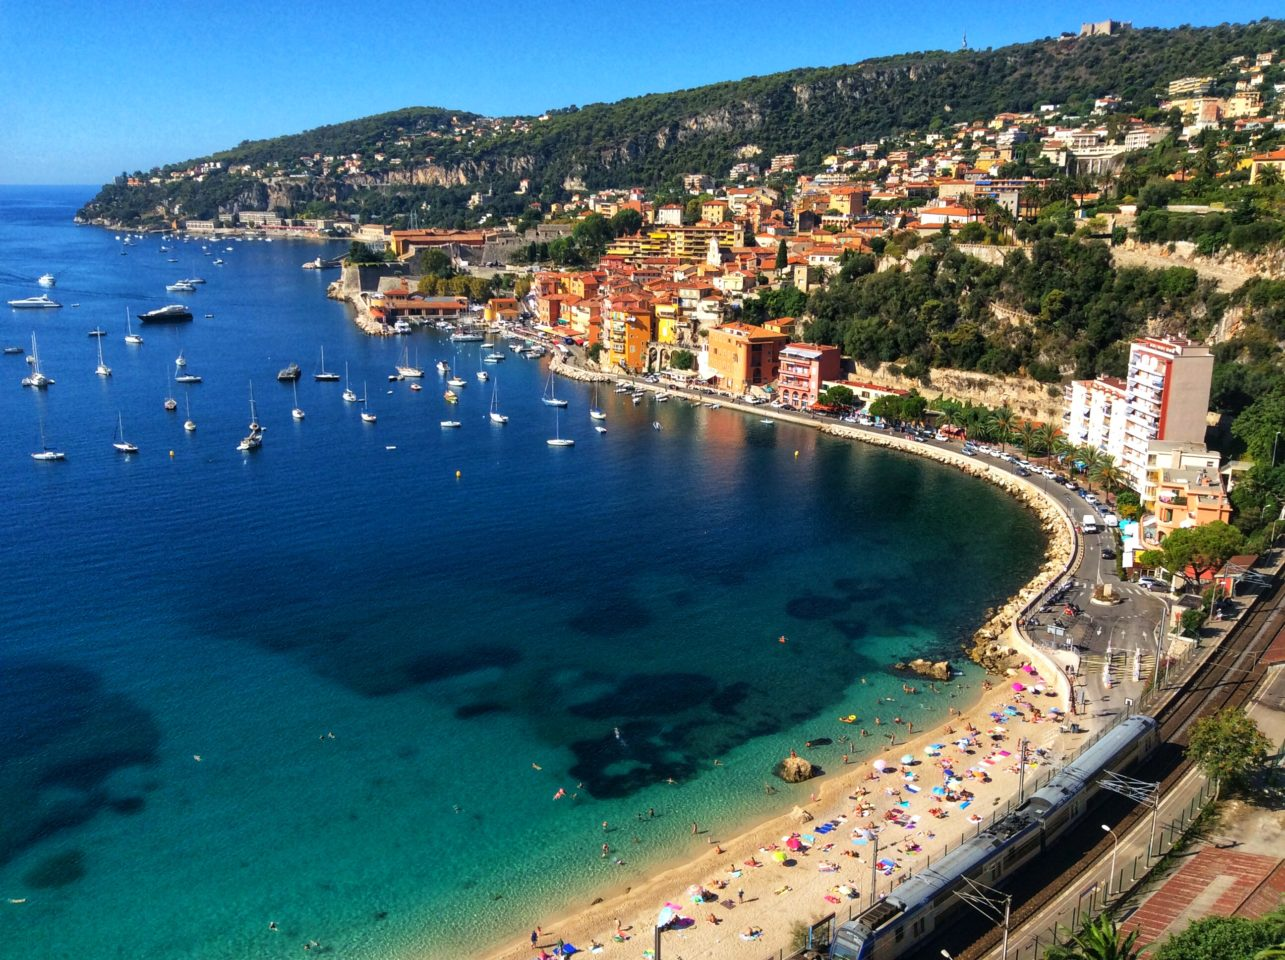 Villefranche-sur-Mer near Nice in France